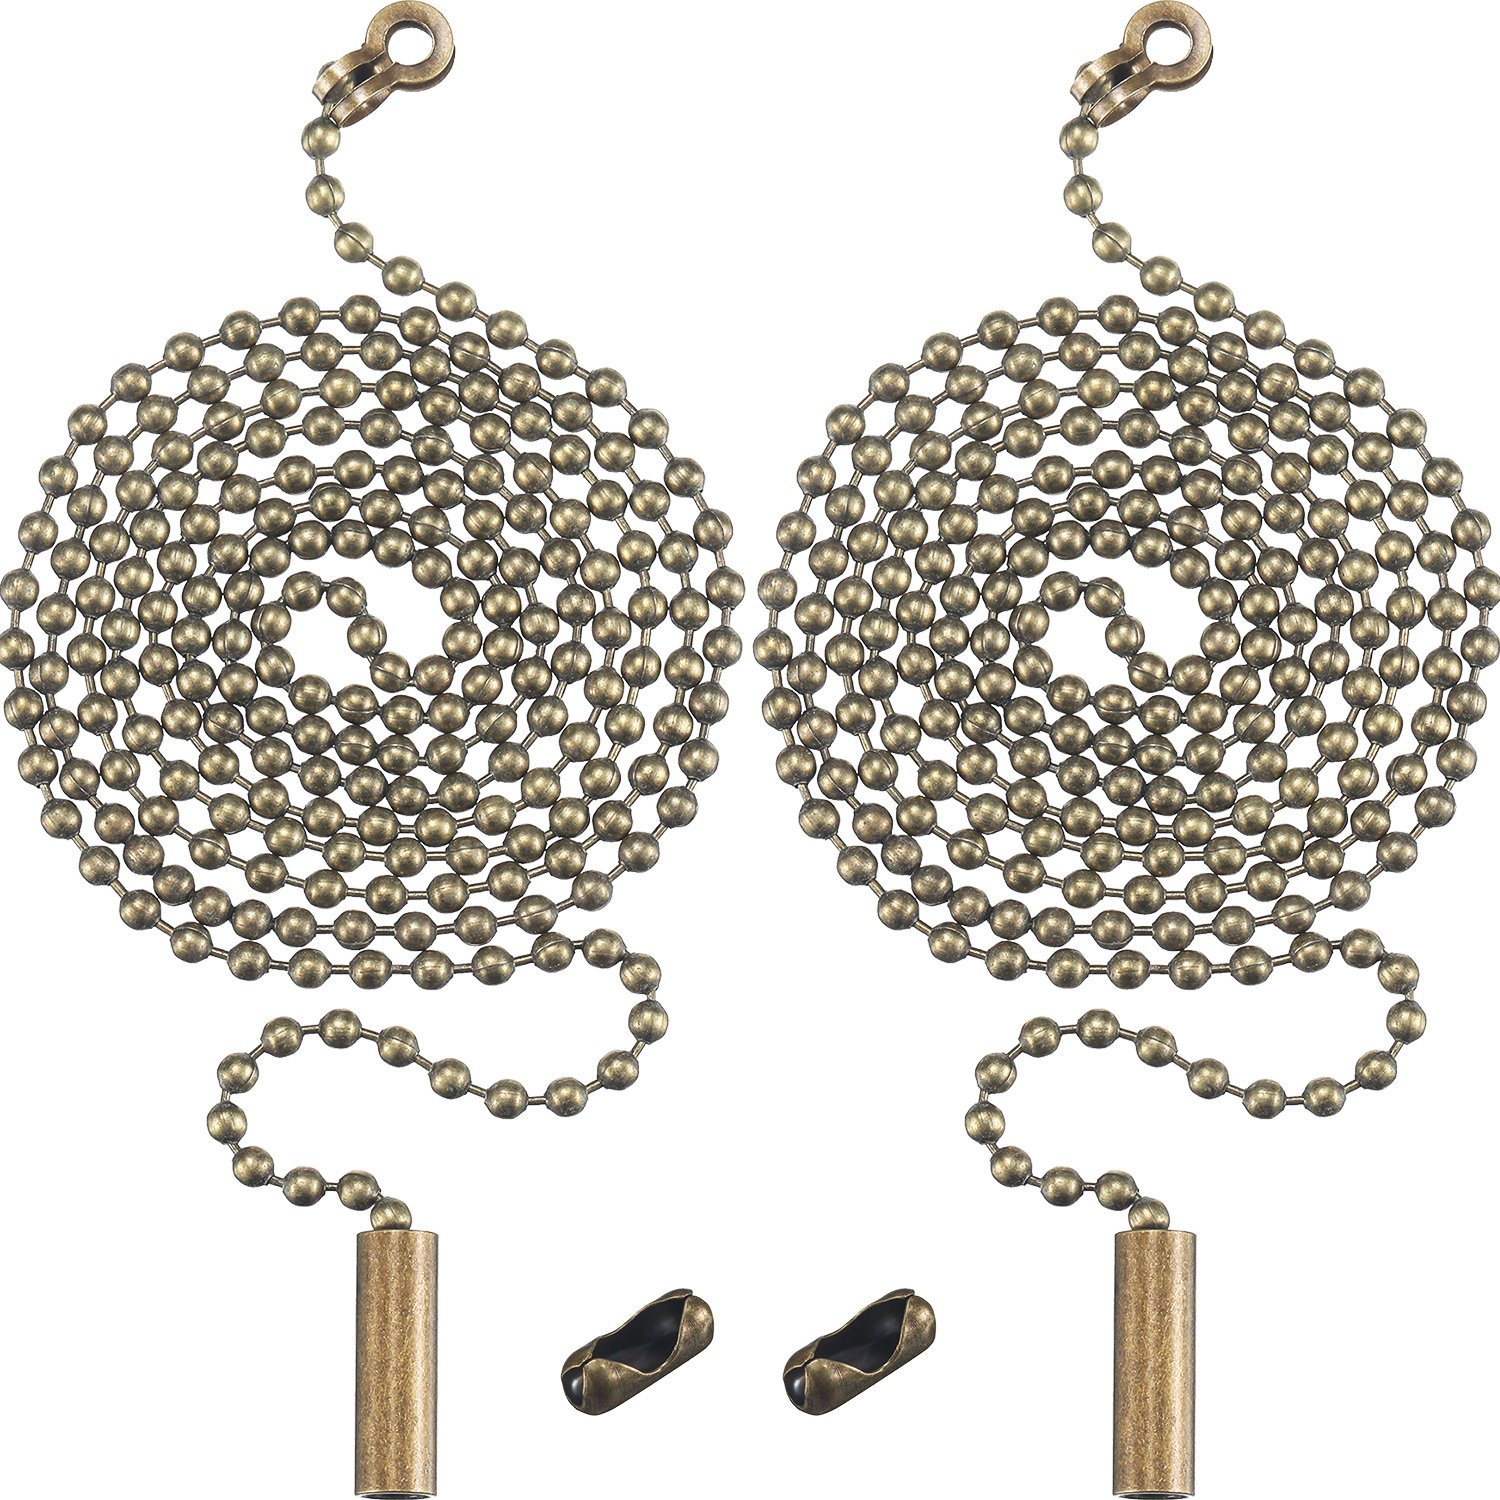 2 Pack Bronze Beaded Pull Chain Extension with Connector for Ceiling Light Fan Chain, 1 Meter Length (Bronze) Shappy